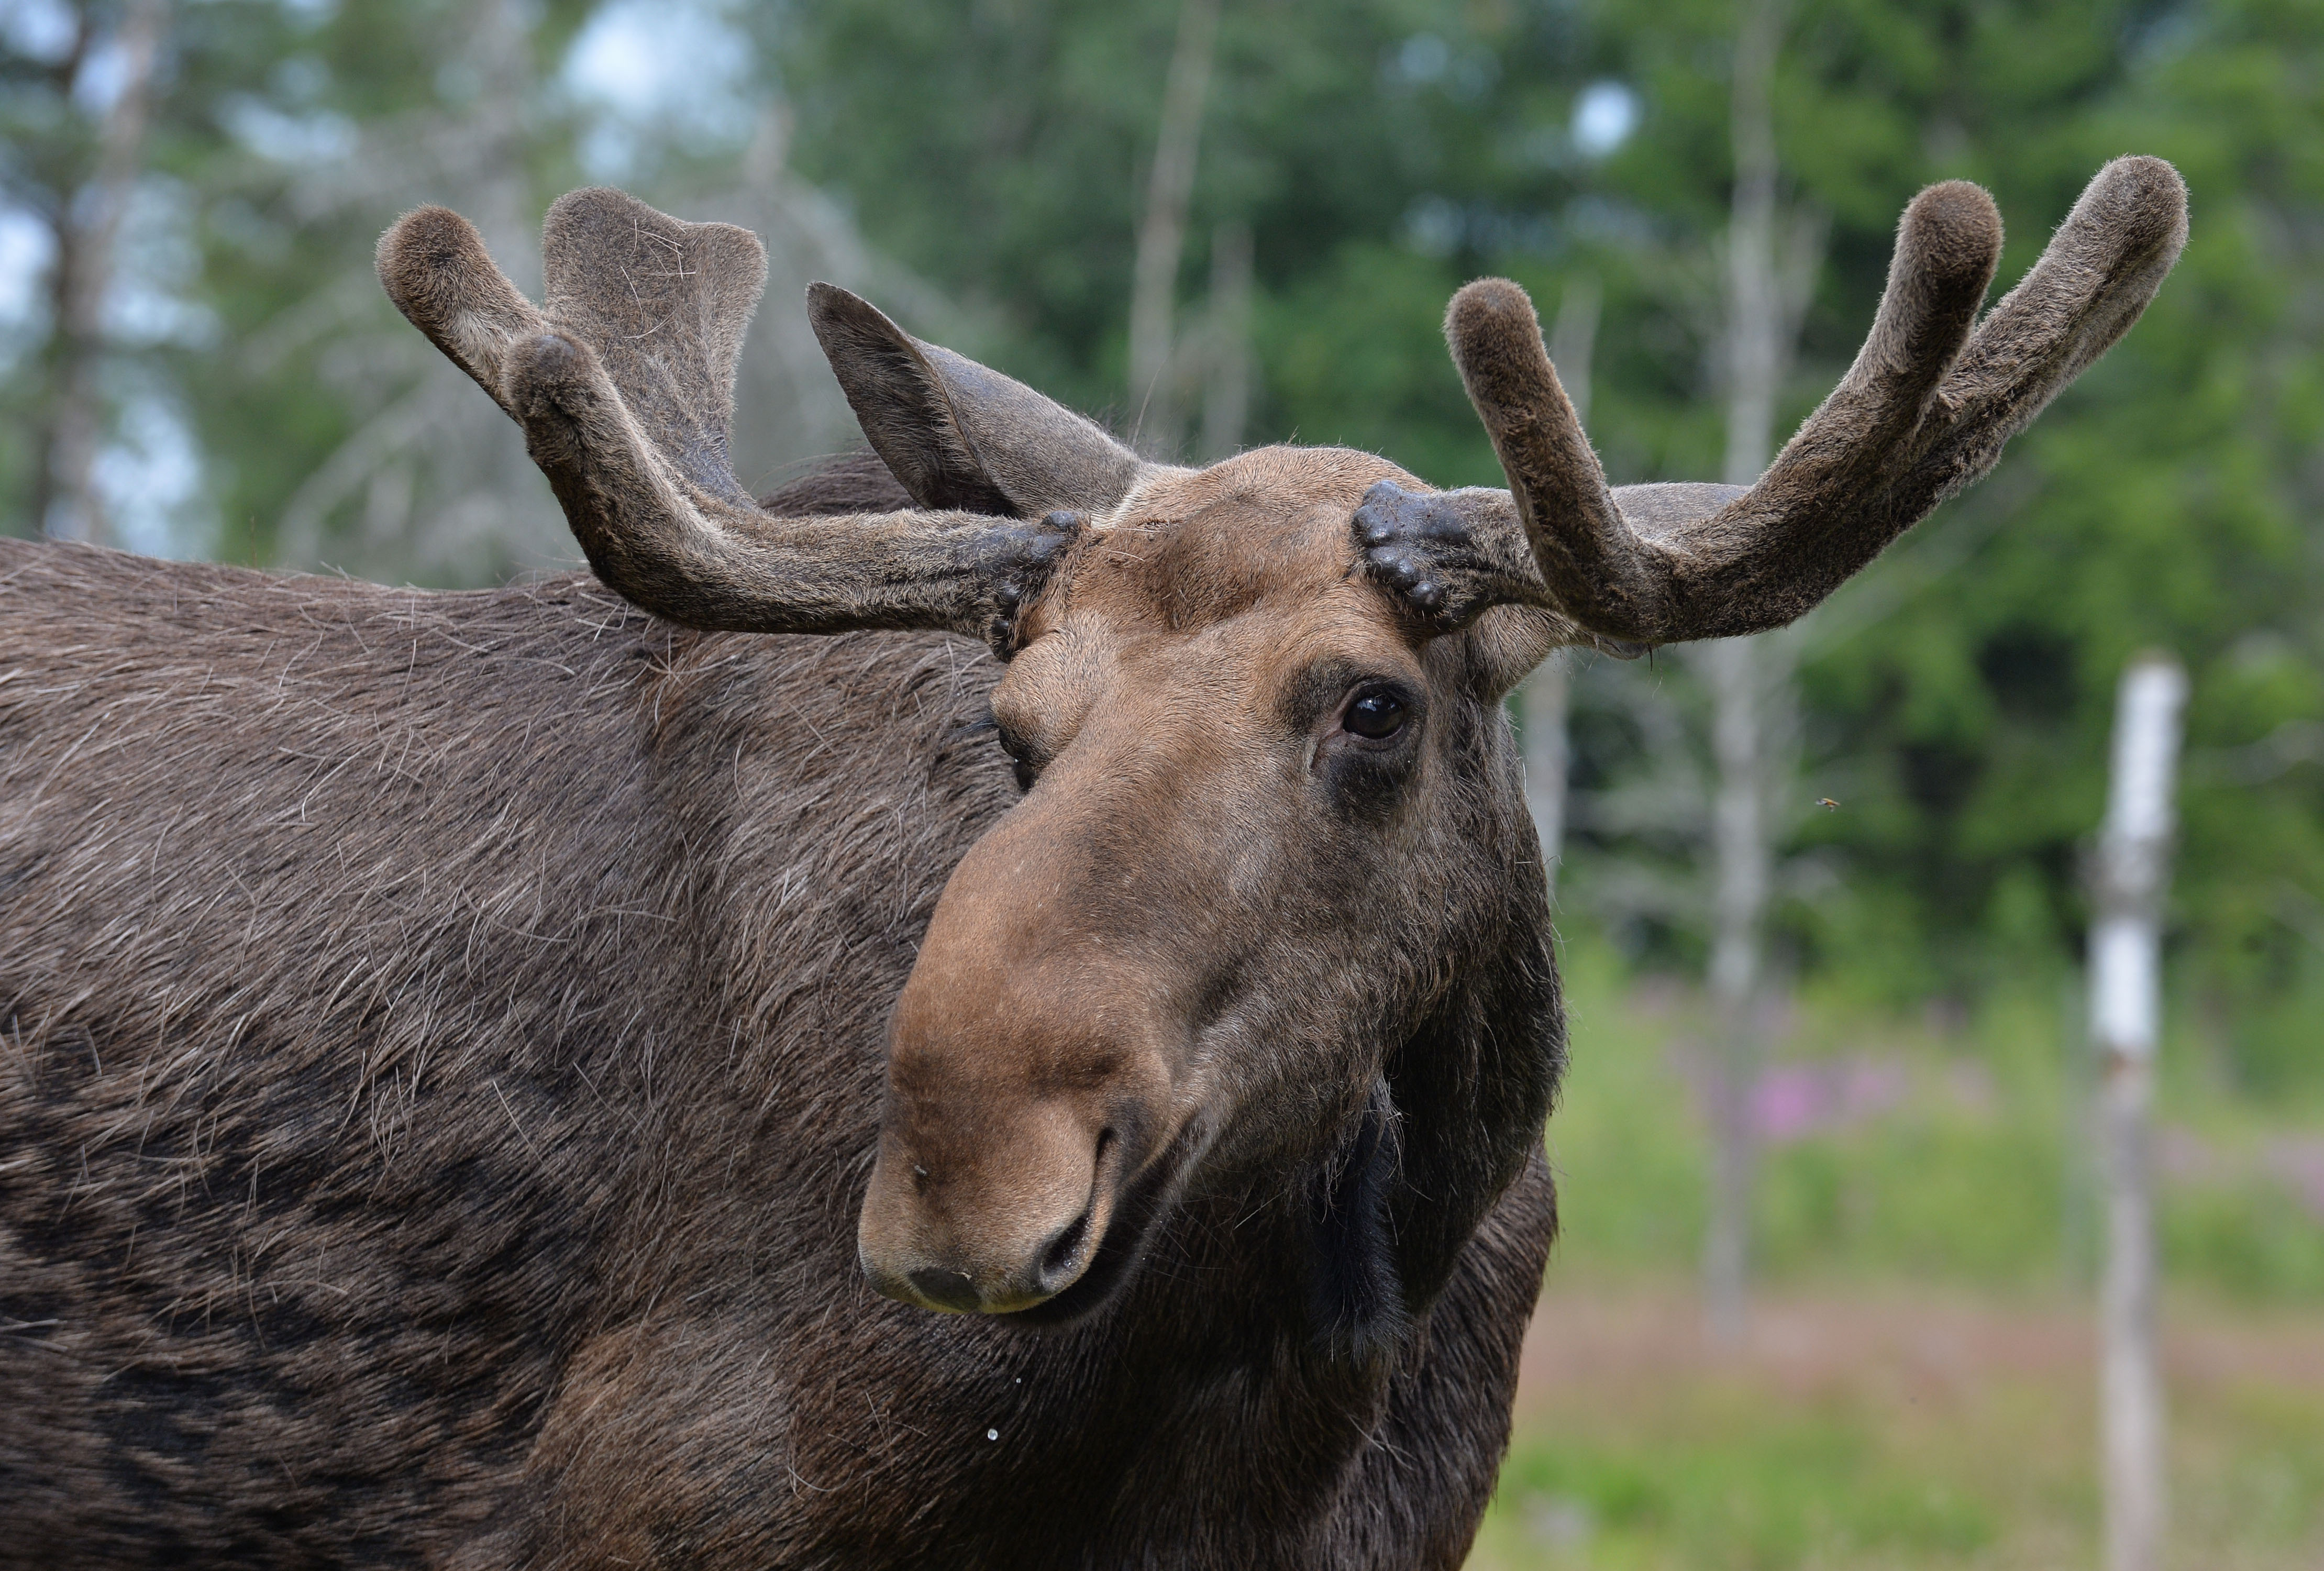 The dad thought he had shot a moose but after approaching the carcass discovered it was his young son. Credit: PA